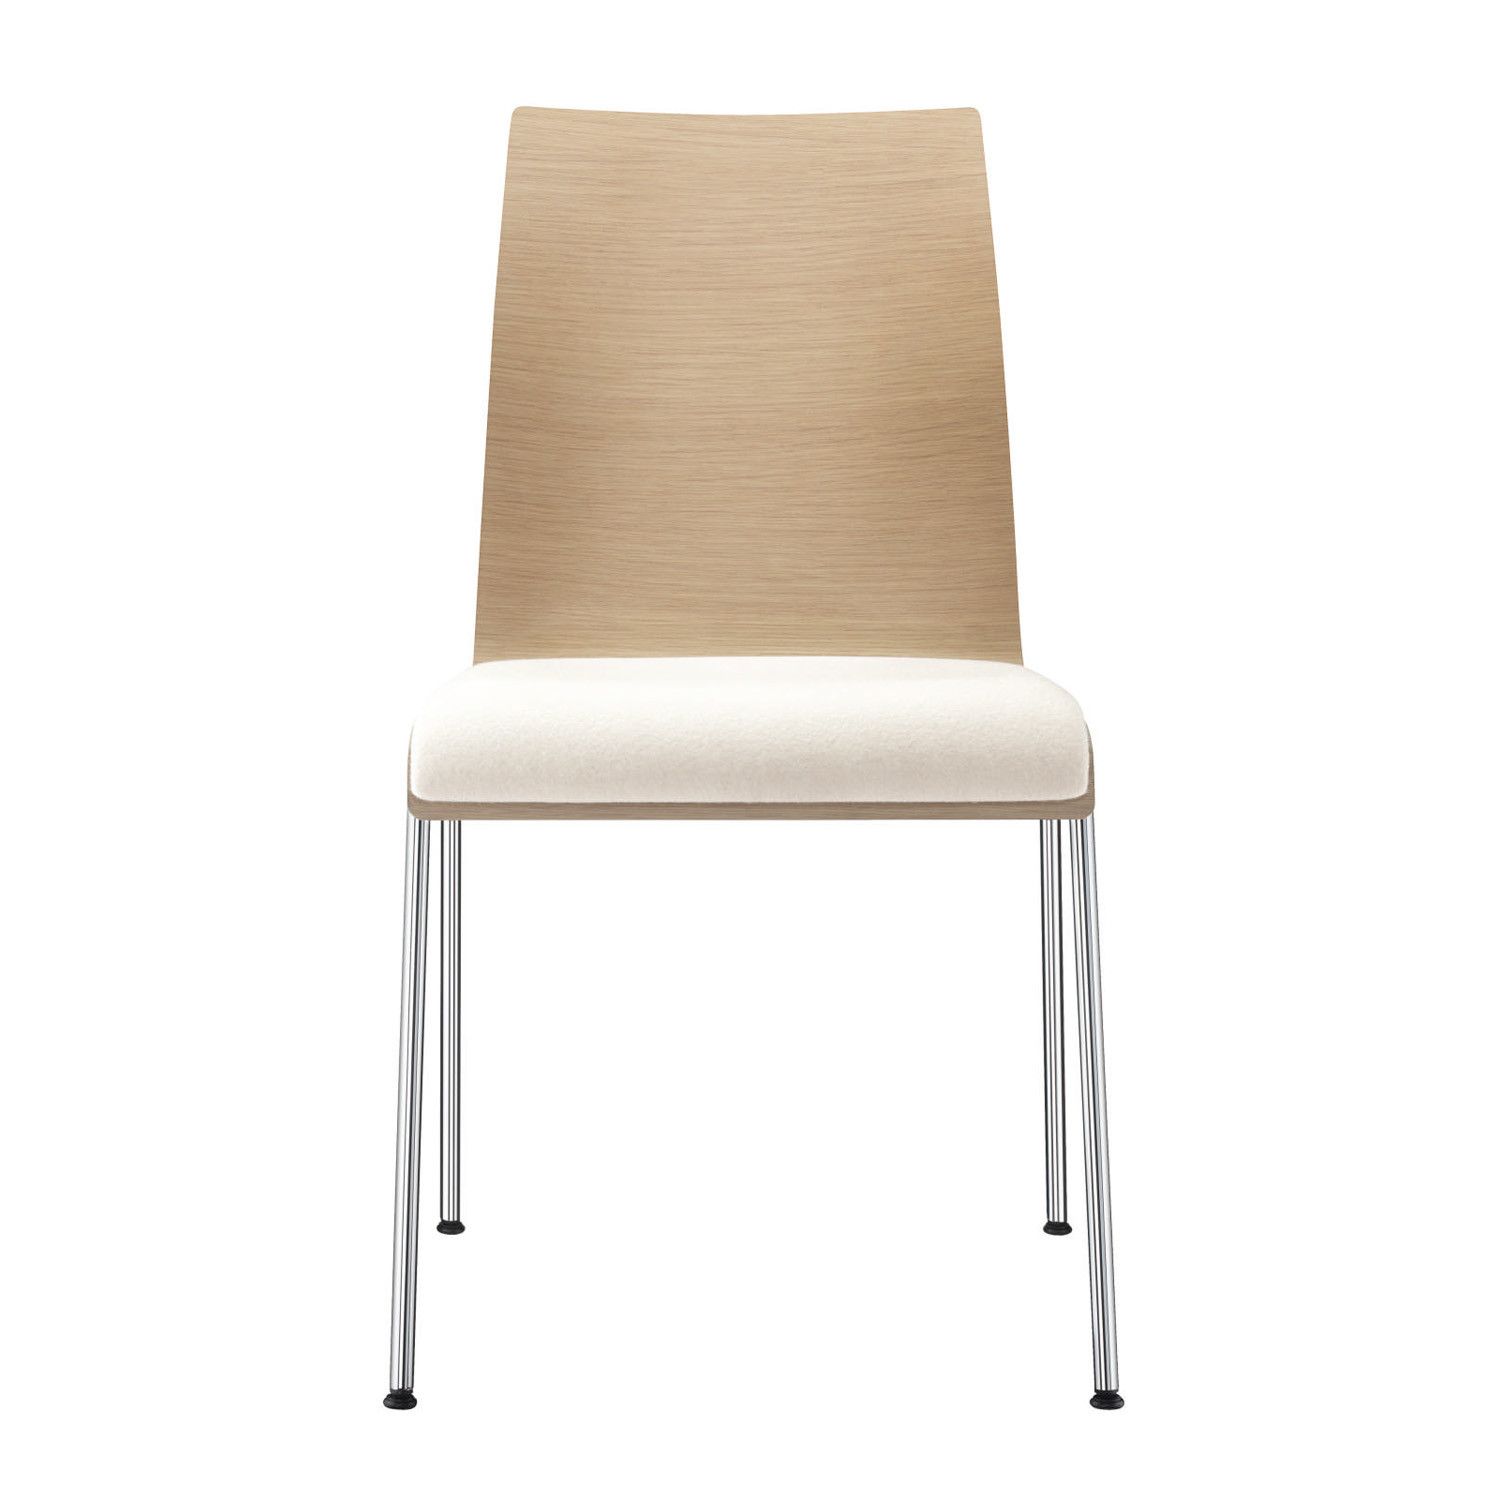 Prime Chair with padded seat